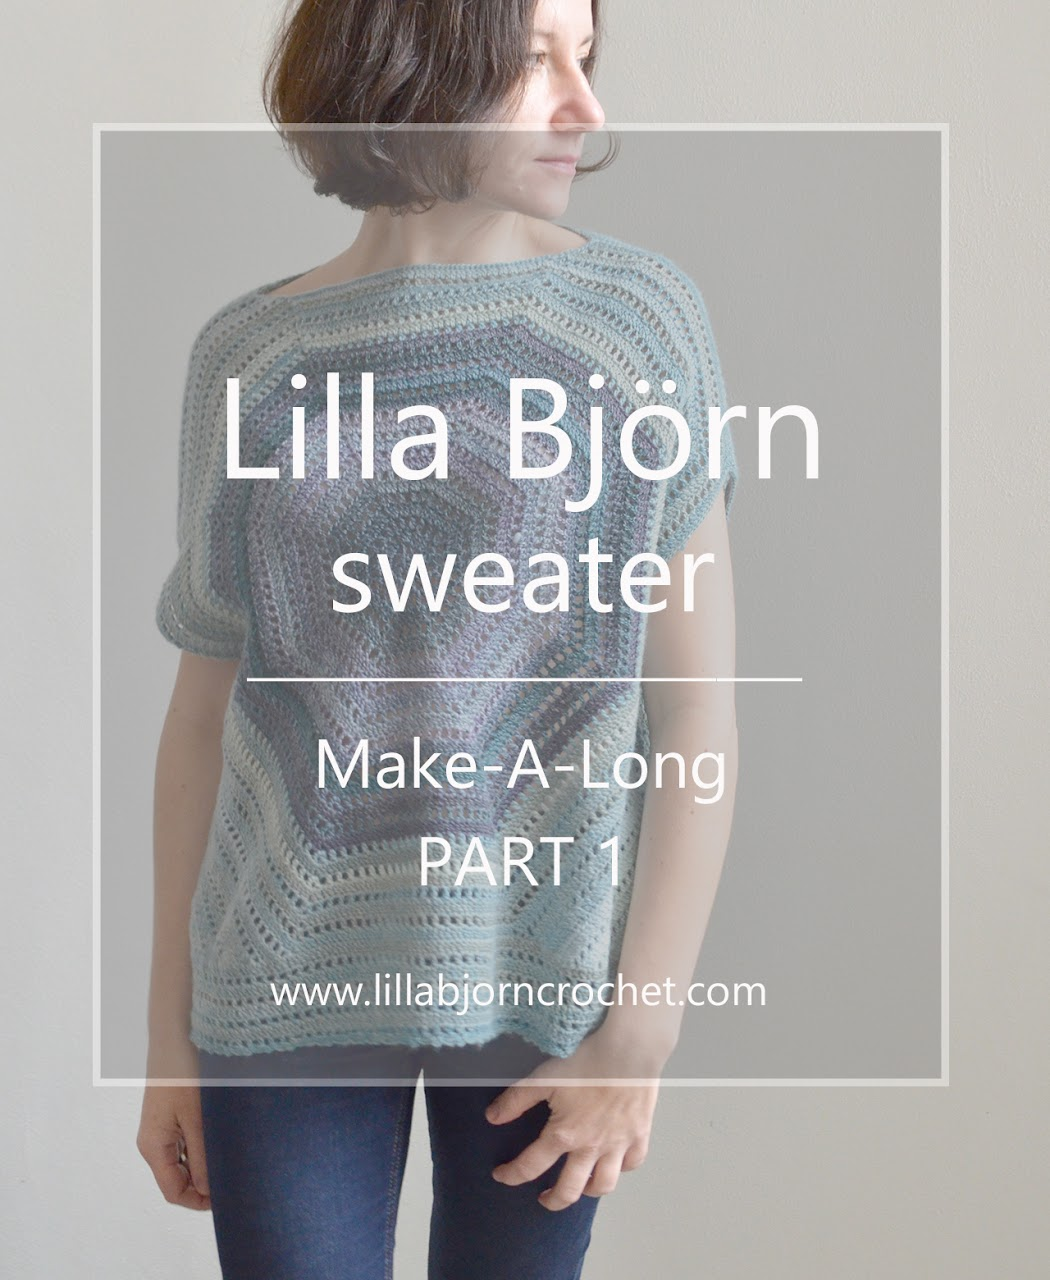 Lilla Bjorn Sweater - FREE crochet pattern by www.lillabjorncrochet.com